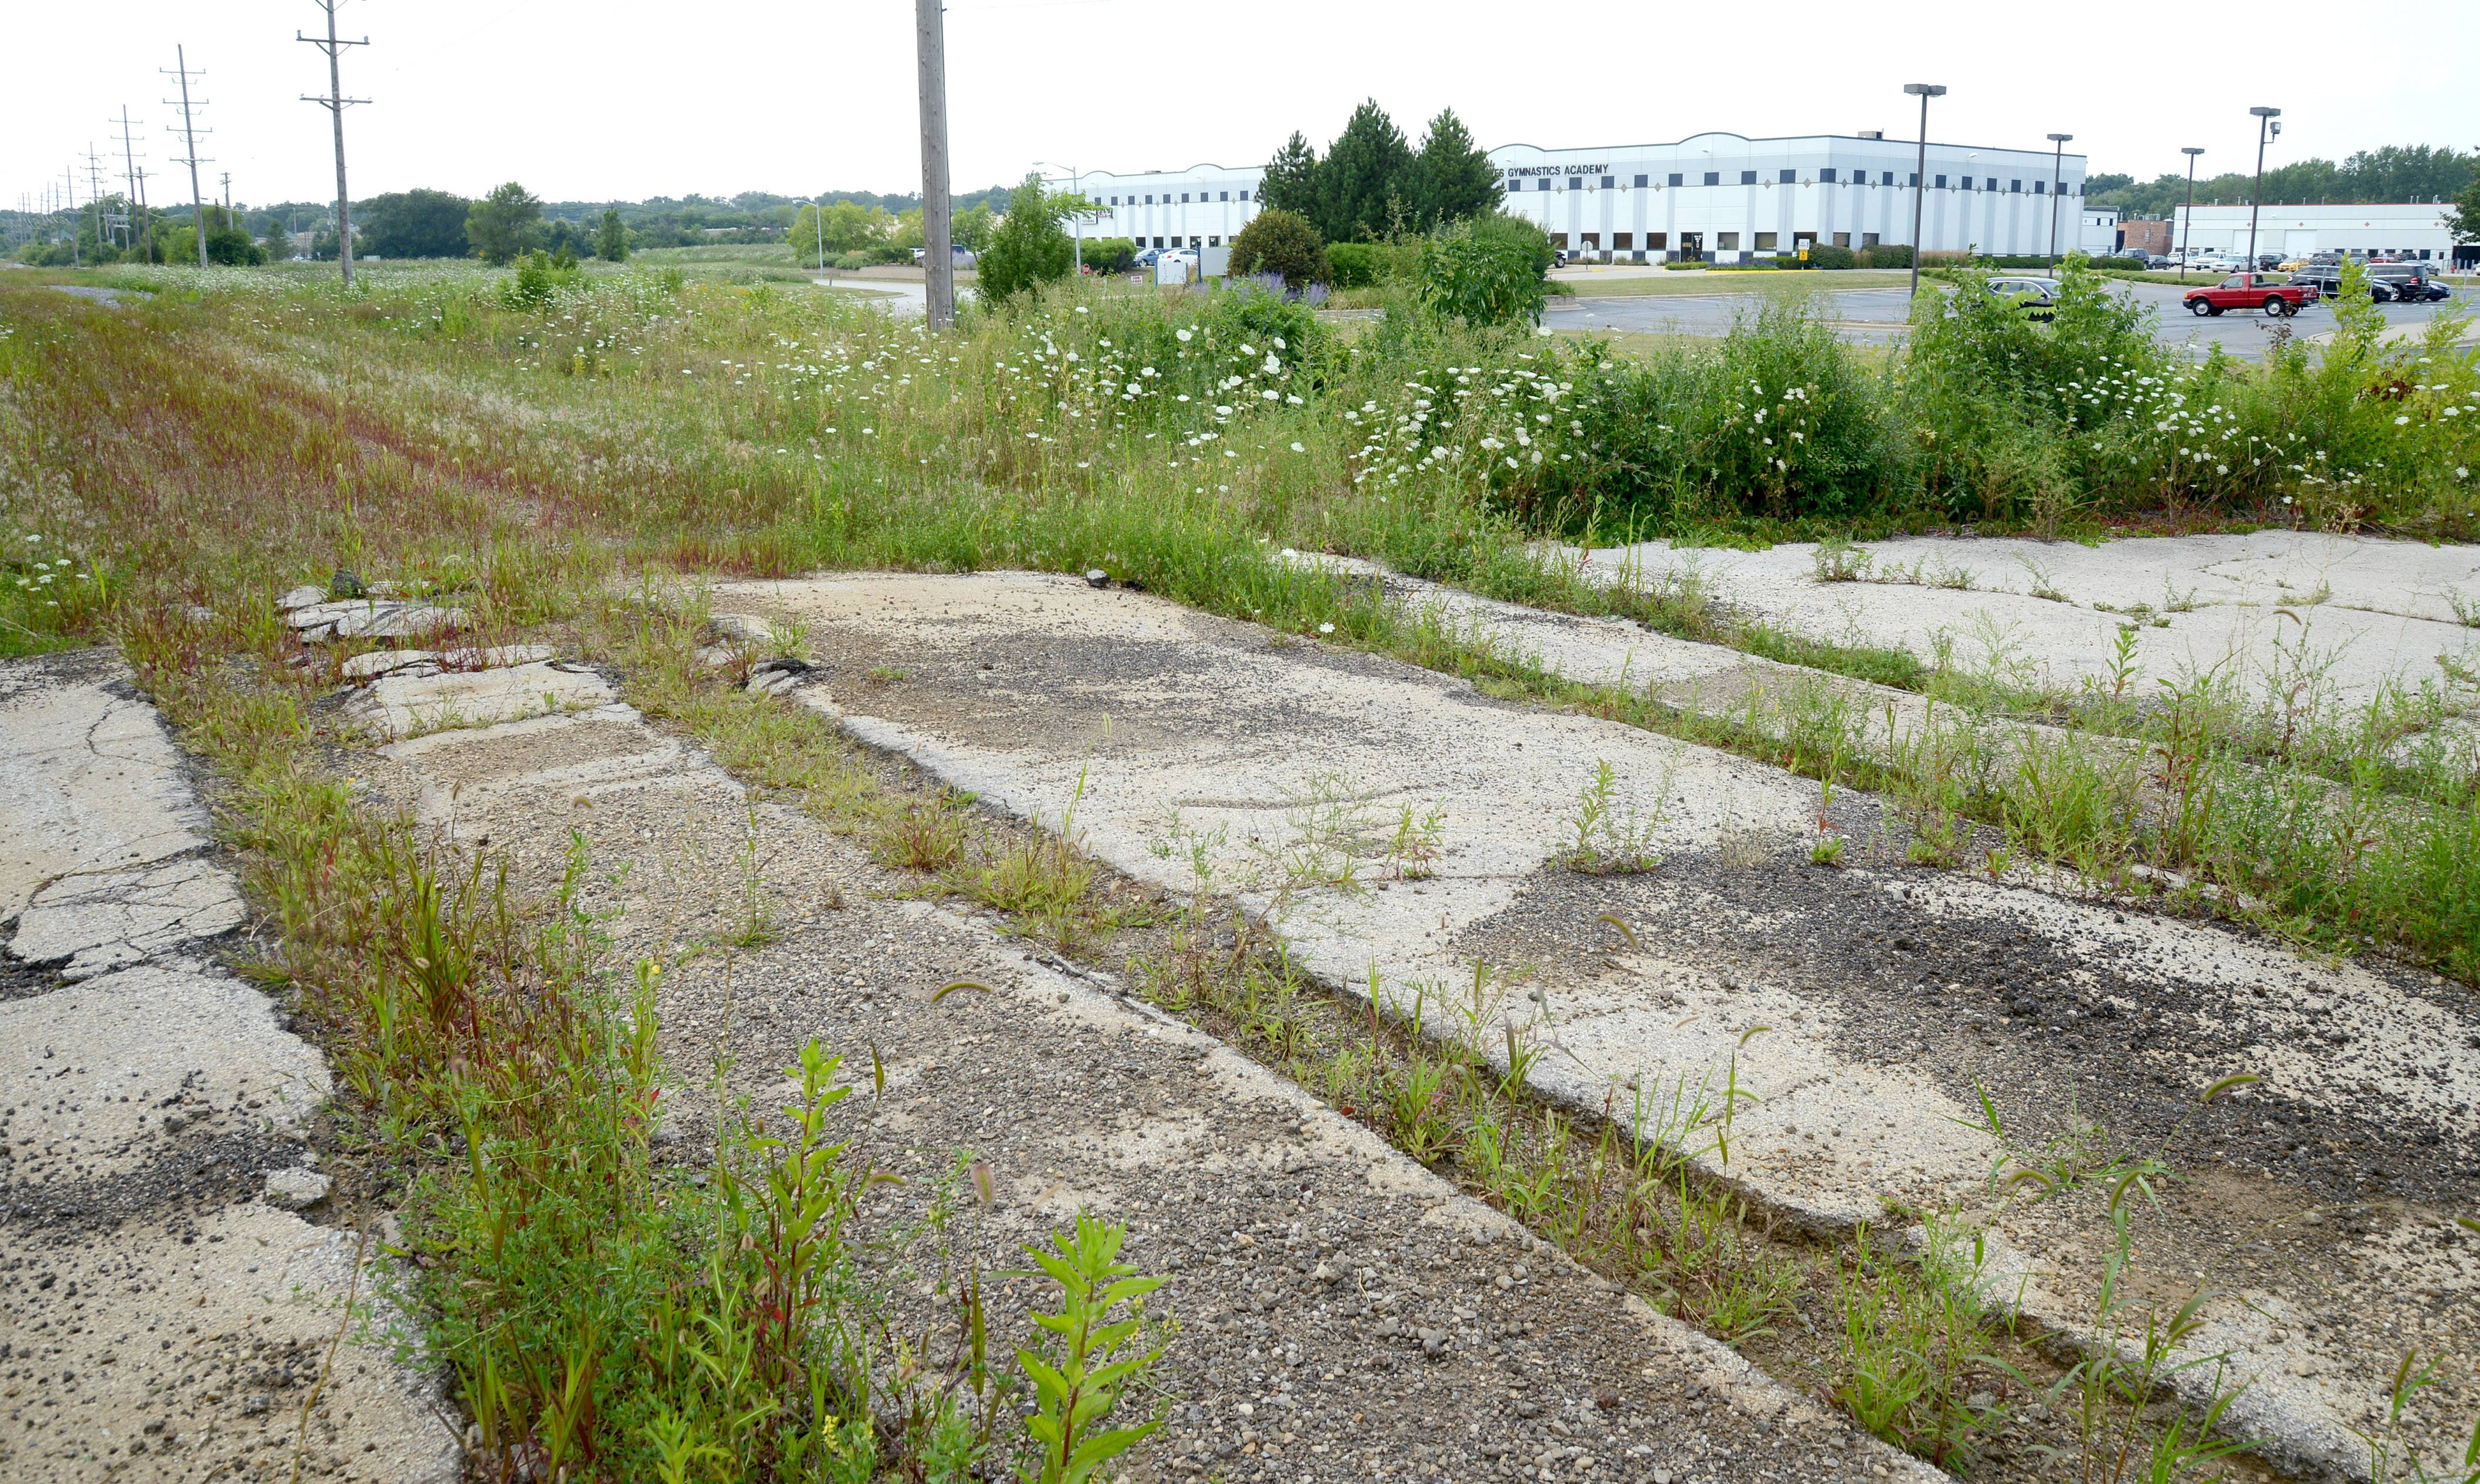 An abandoned railroad line (tracks have been removed) where DeBruyne Street dead ends is near where Moline Malleable once stood in St. Charles. The area is now a commercial sector, with an indoor soccer venue and other businesses.